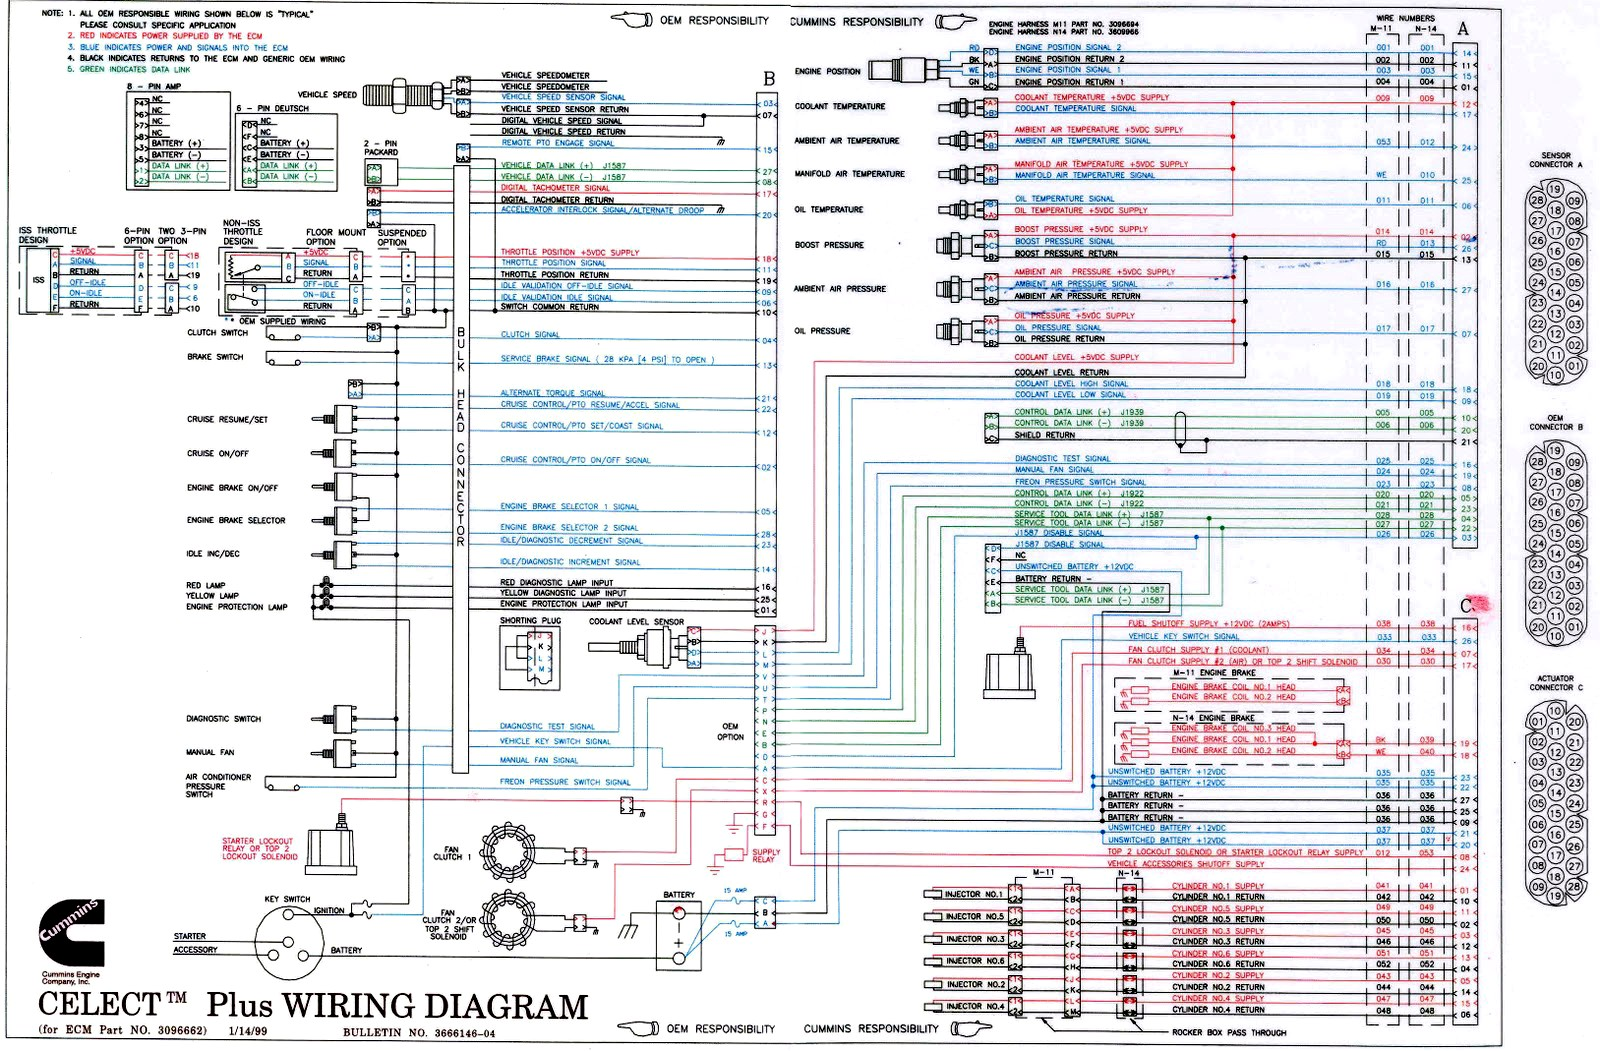 Celect Plus Wiring Diagram Cummins on 2001 buick century fuse box diagram